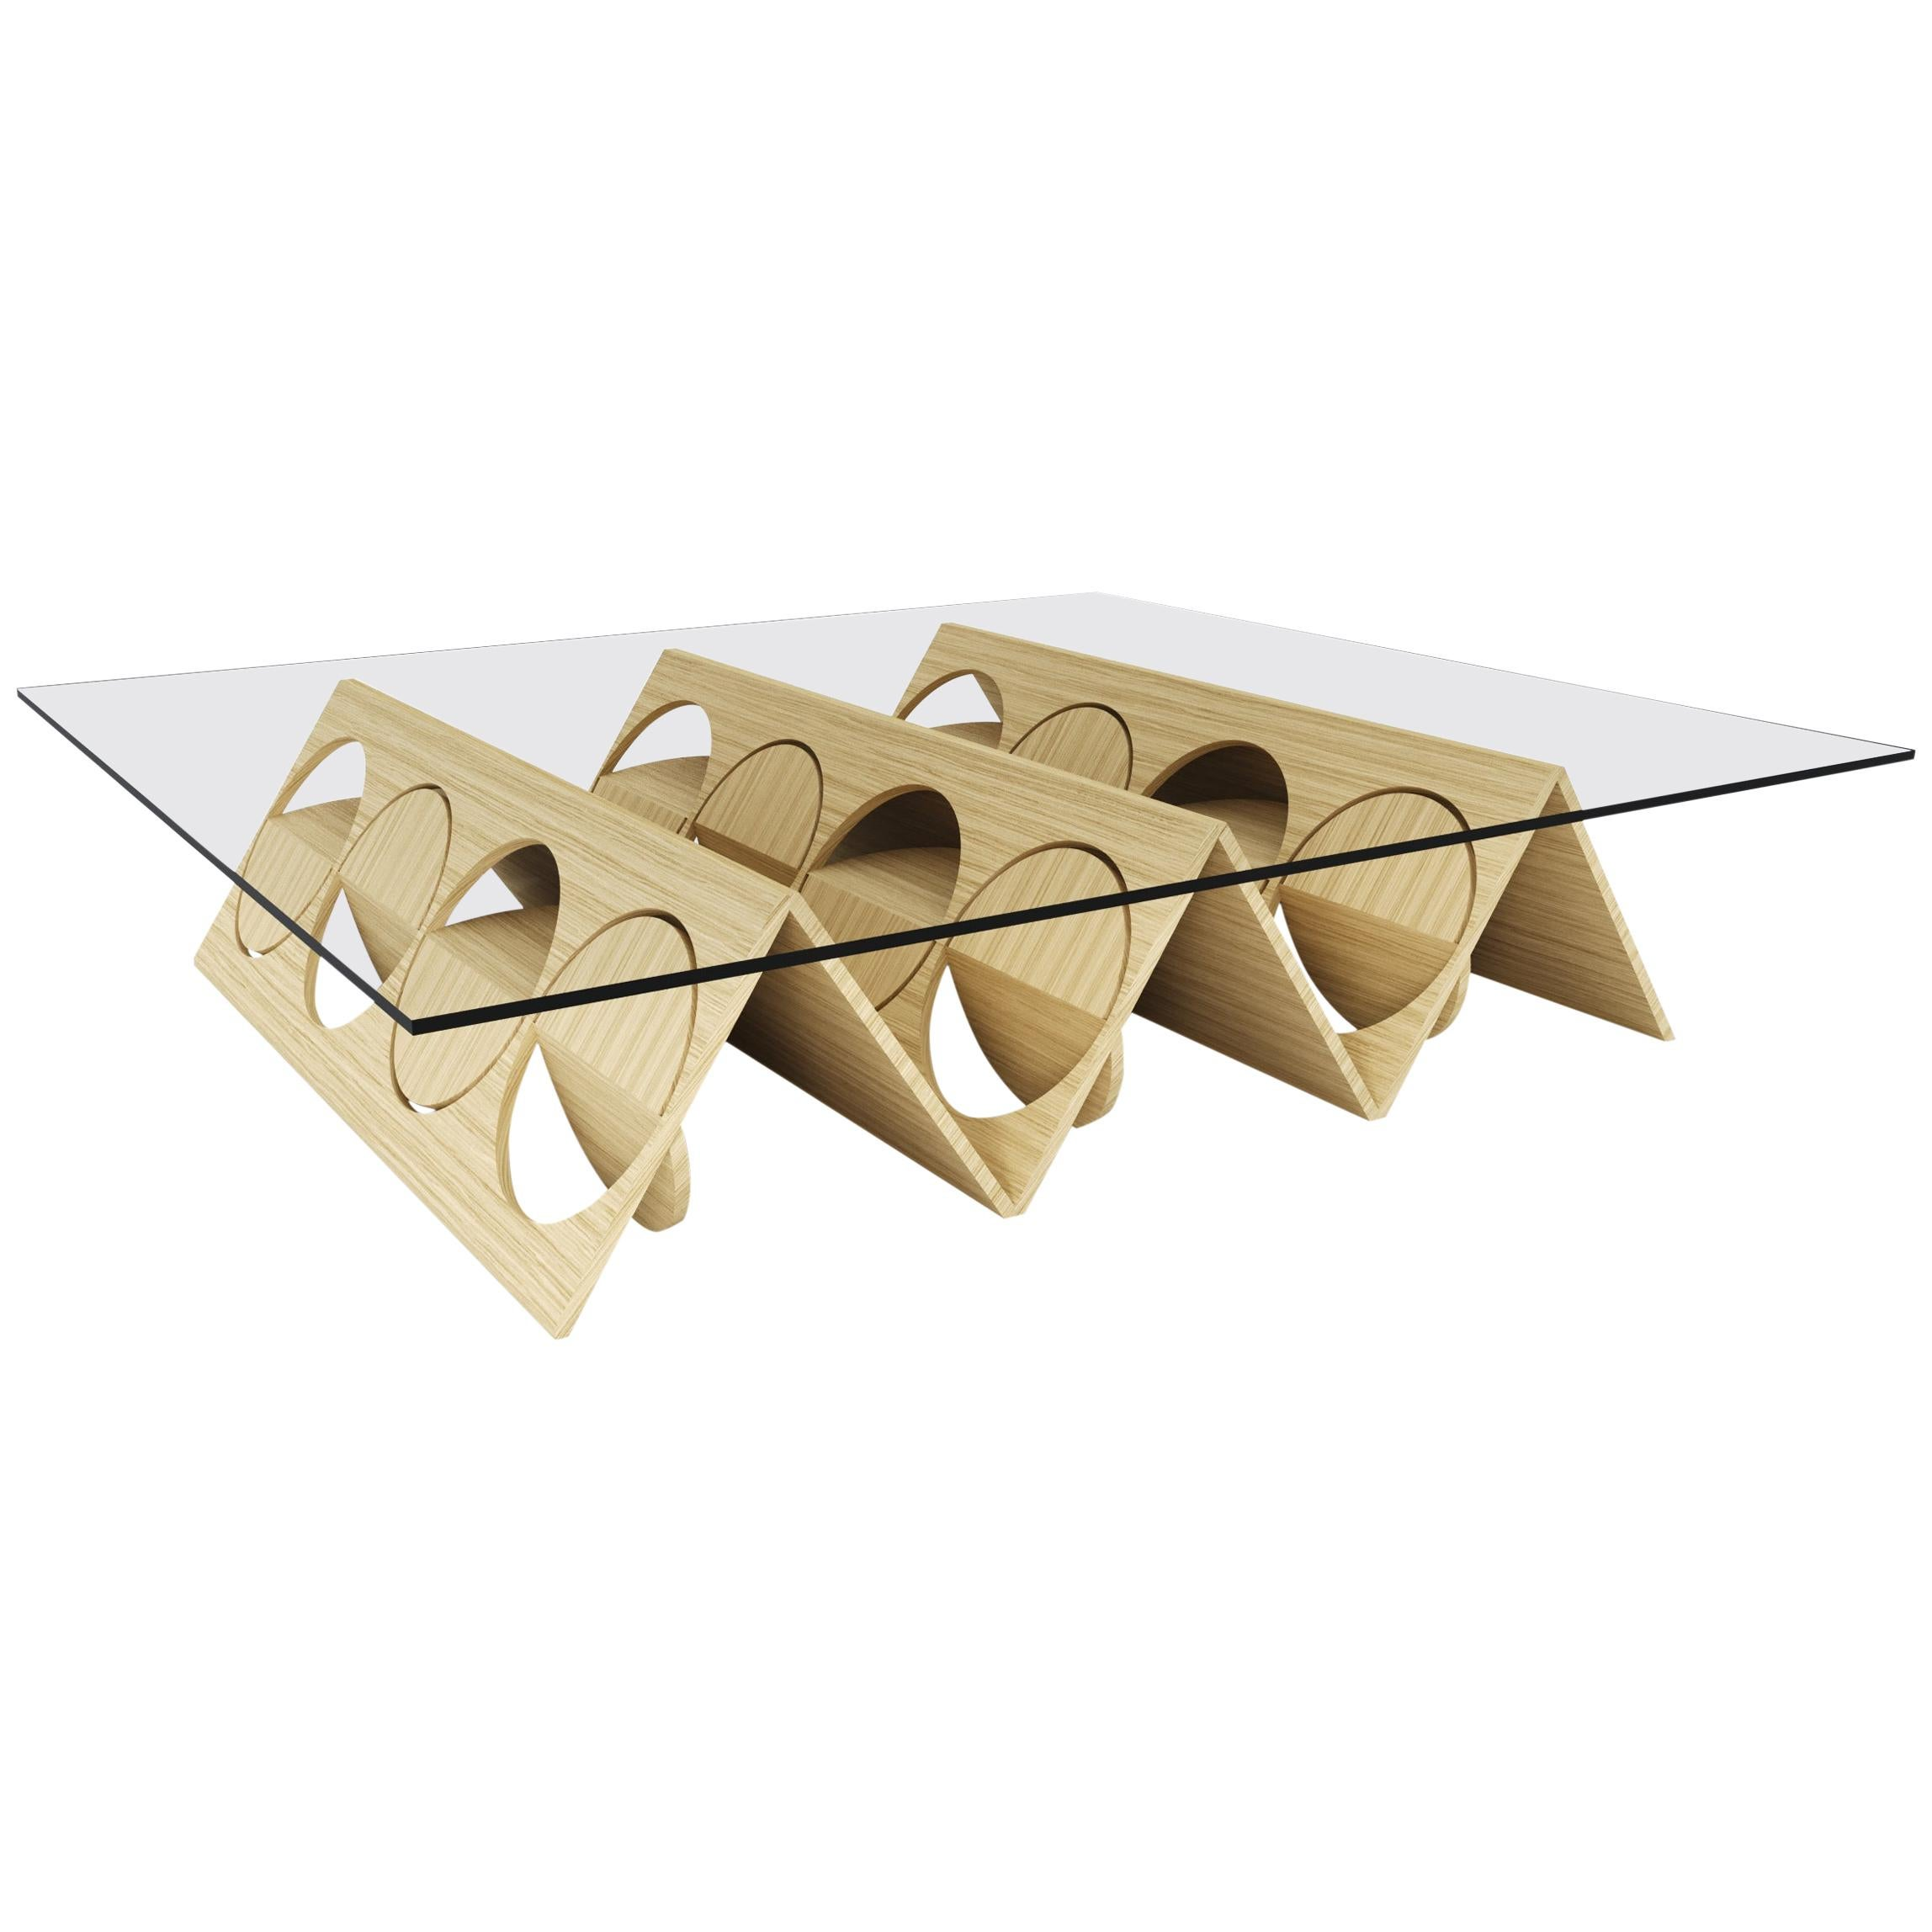 Oakwood Inverted Pyramid Coffee Table by Ana Volante Studio